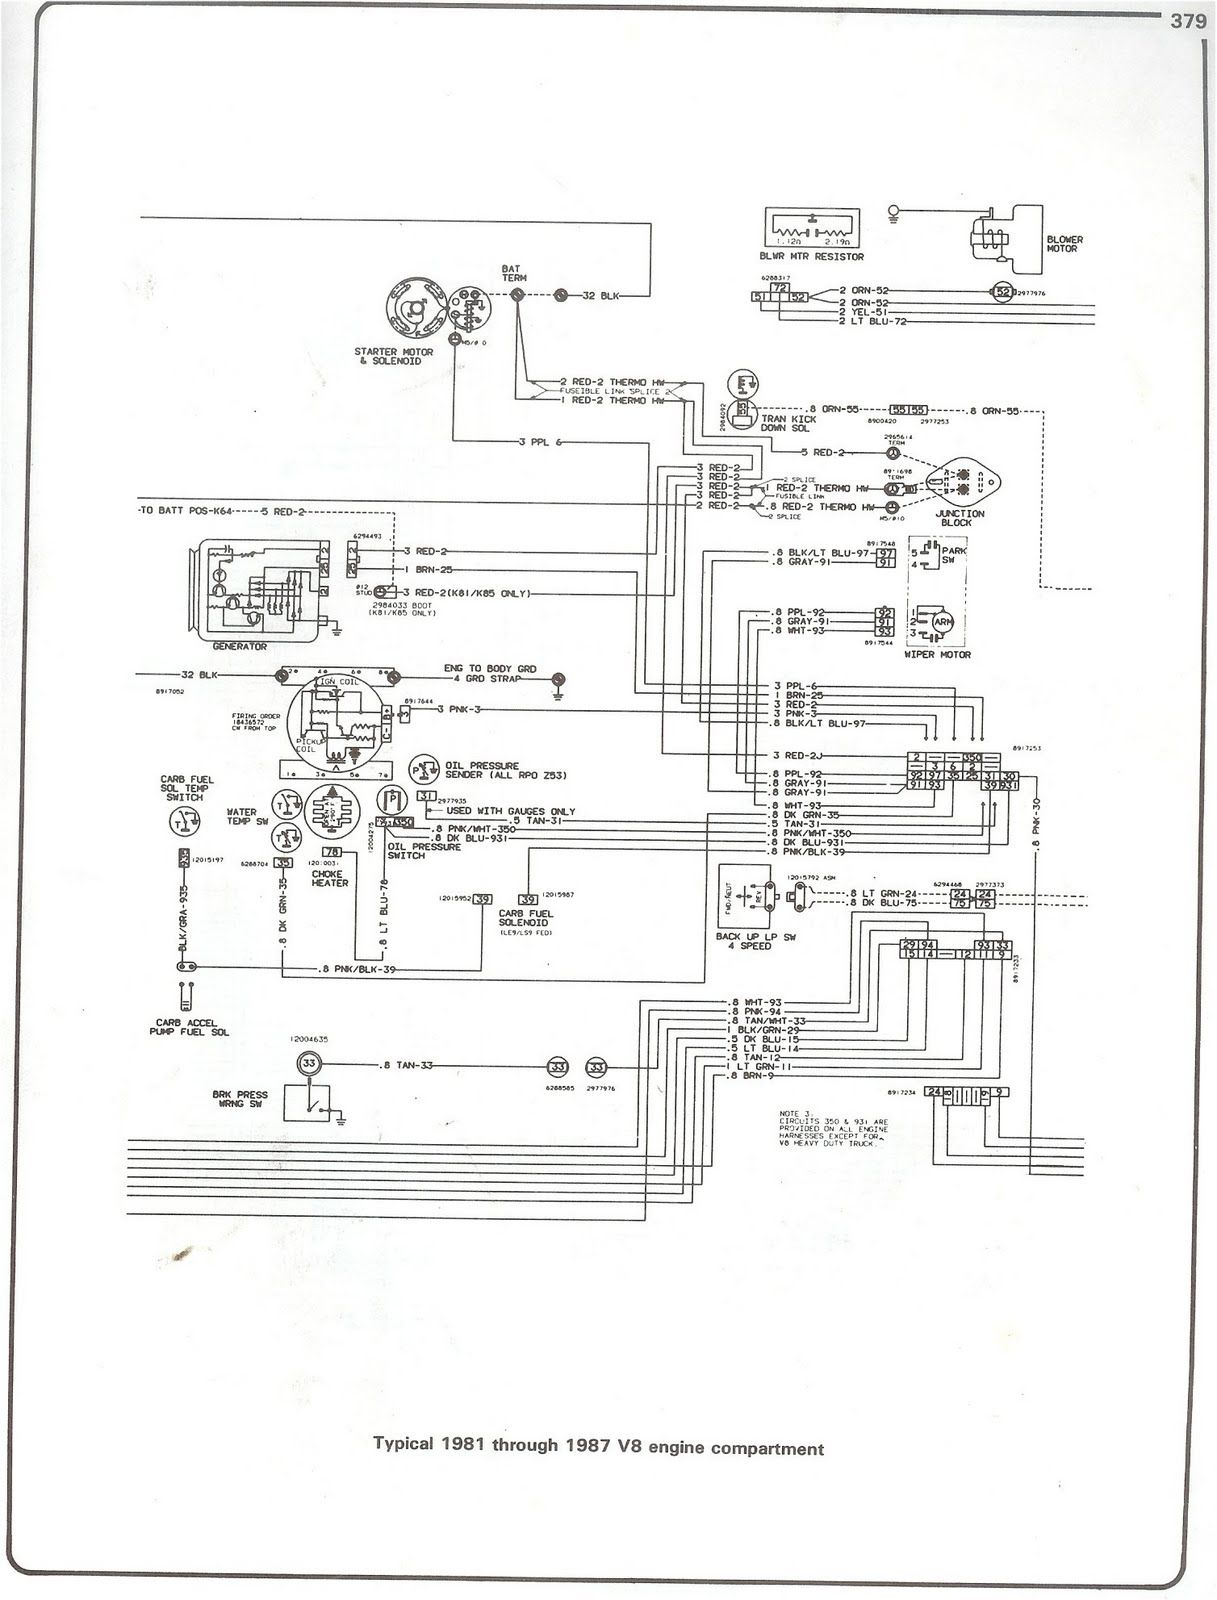 small resolution of k5 blazer wiring harness wiring diagram centrek5 blazer wiring harness wiring diagram paperk5 blazer wiring harness